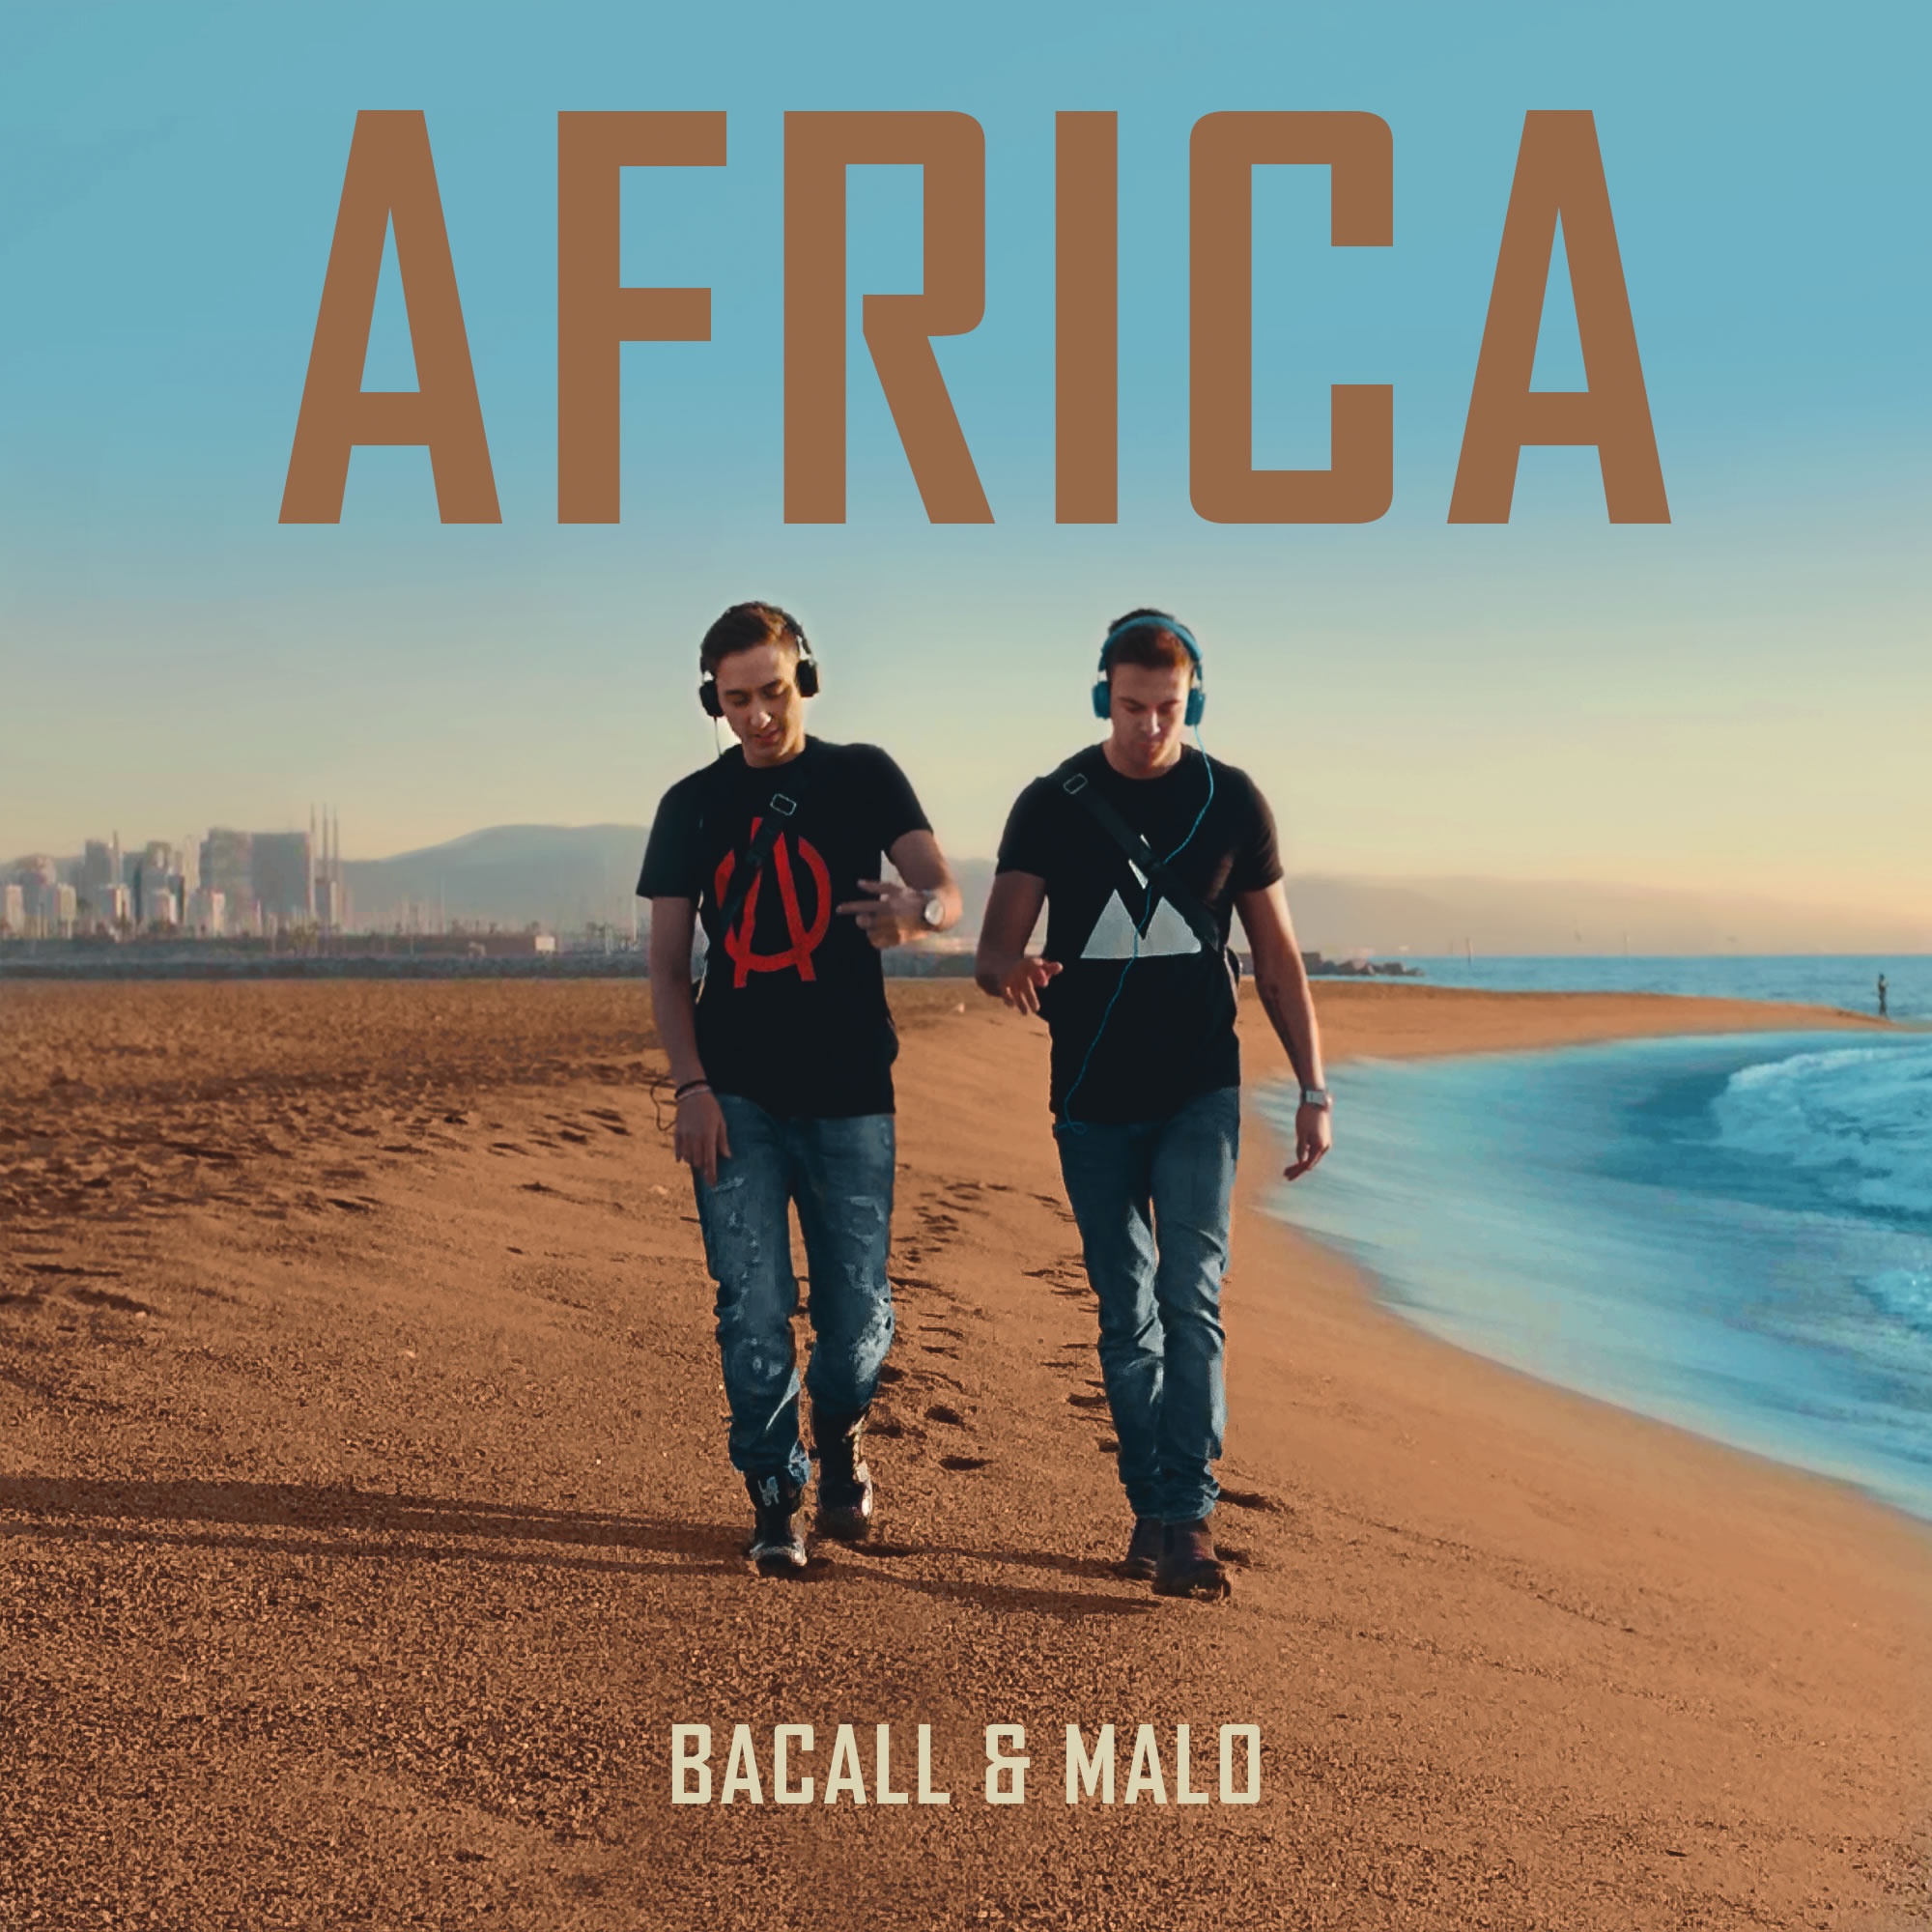 BACALL & MALO - AFRICA